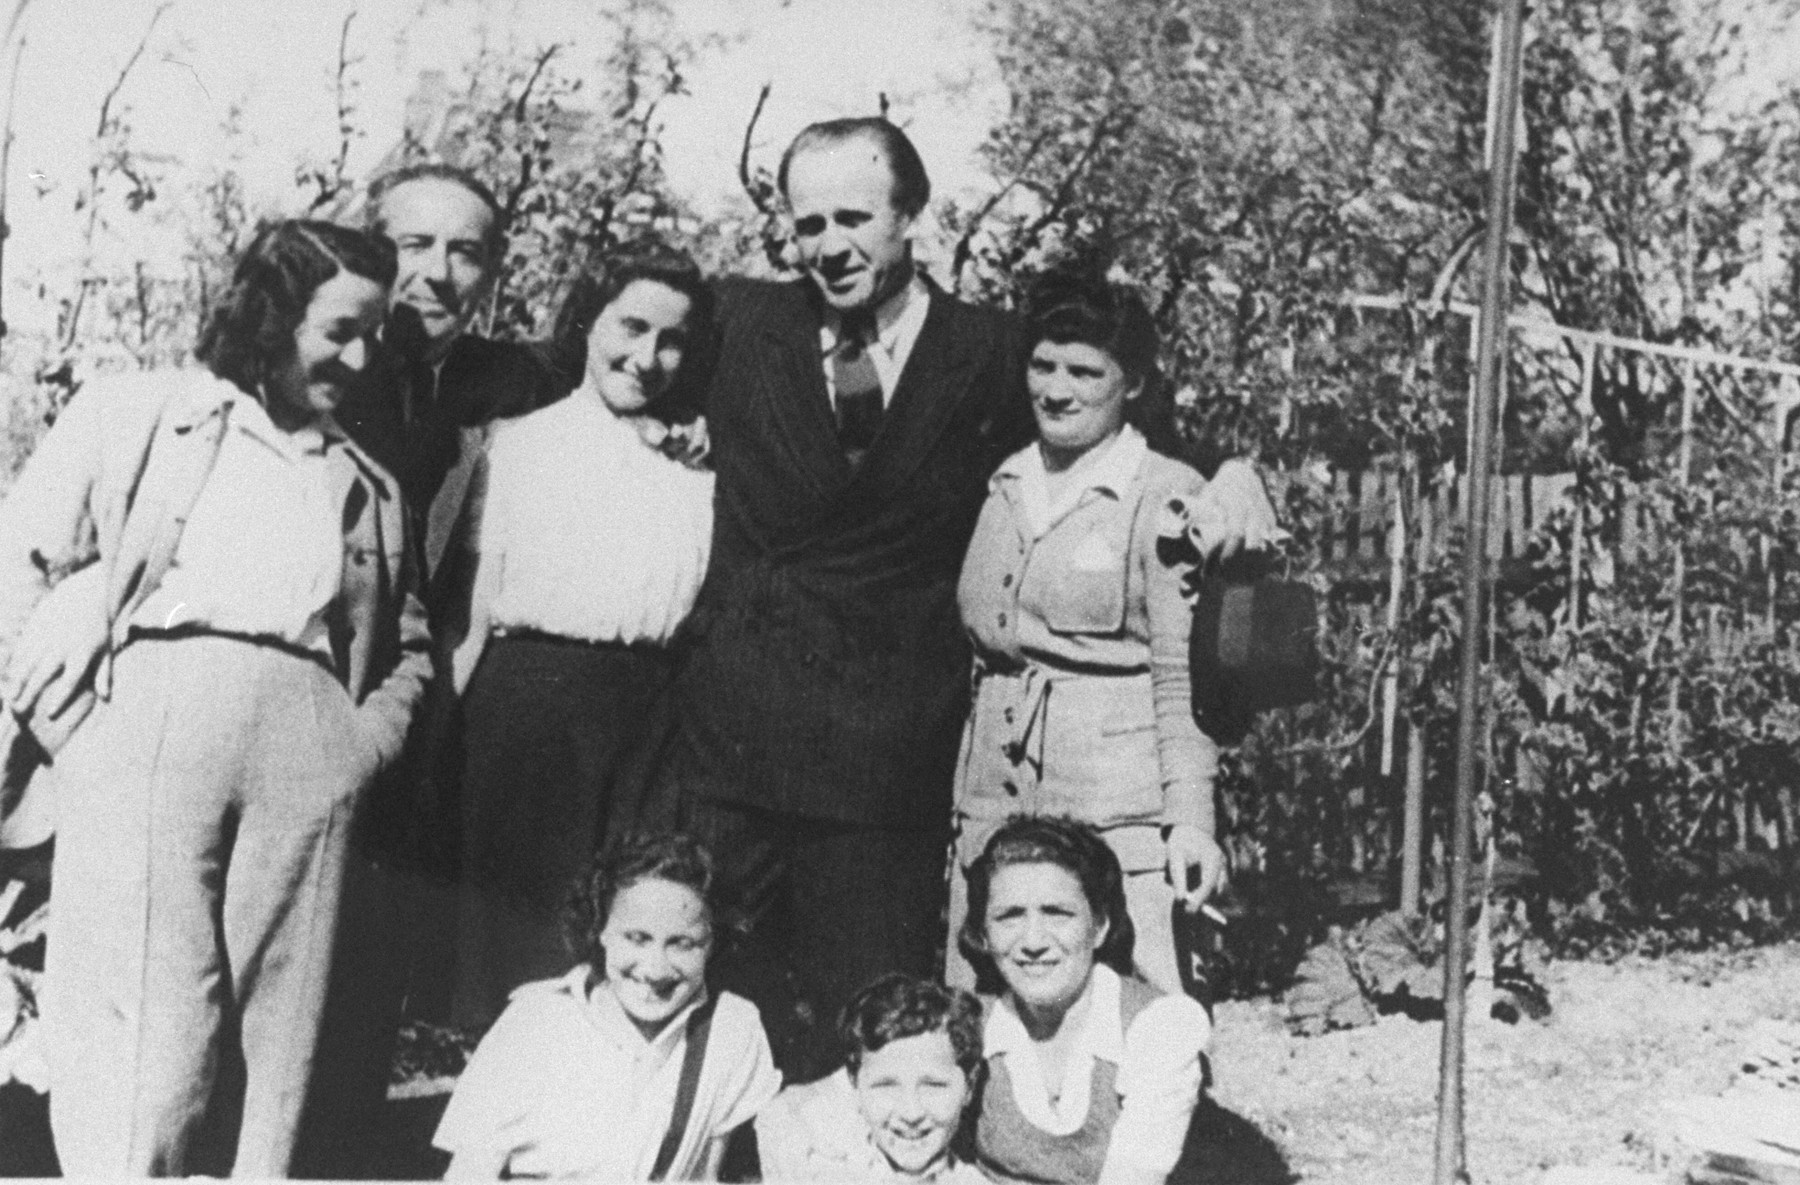 Oskar Schindler (second from the right) in Munich one year after the war with a group of Jews he rescued.    Among those pictured are: Manci Rosner, Edmund Horowitz, Ludmila Pfefferberg-Page, Halinka Horowitz, and Olek Rosner.